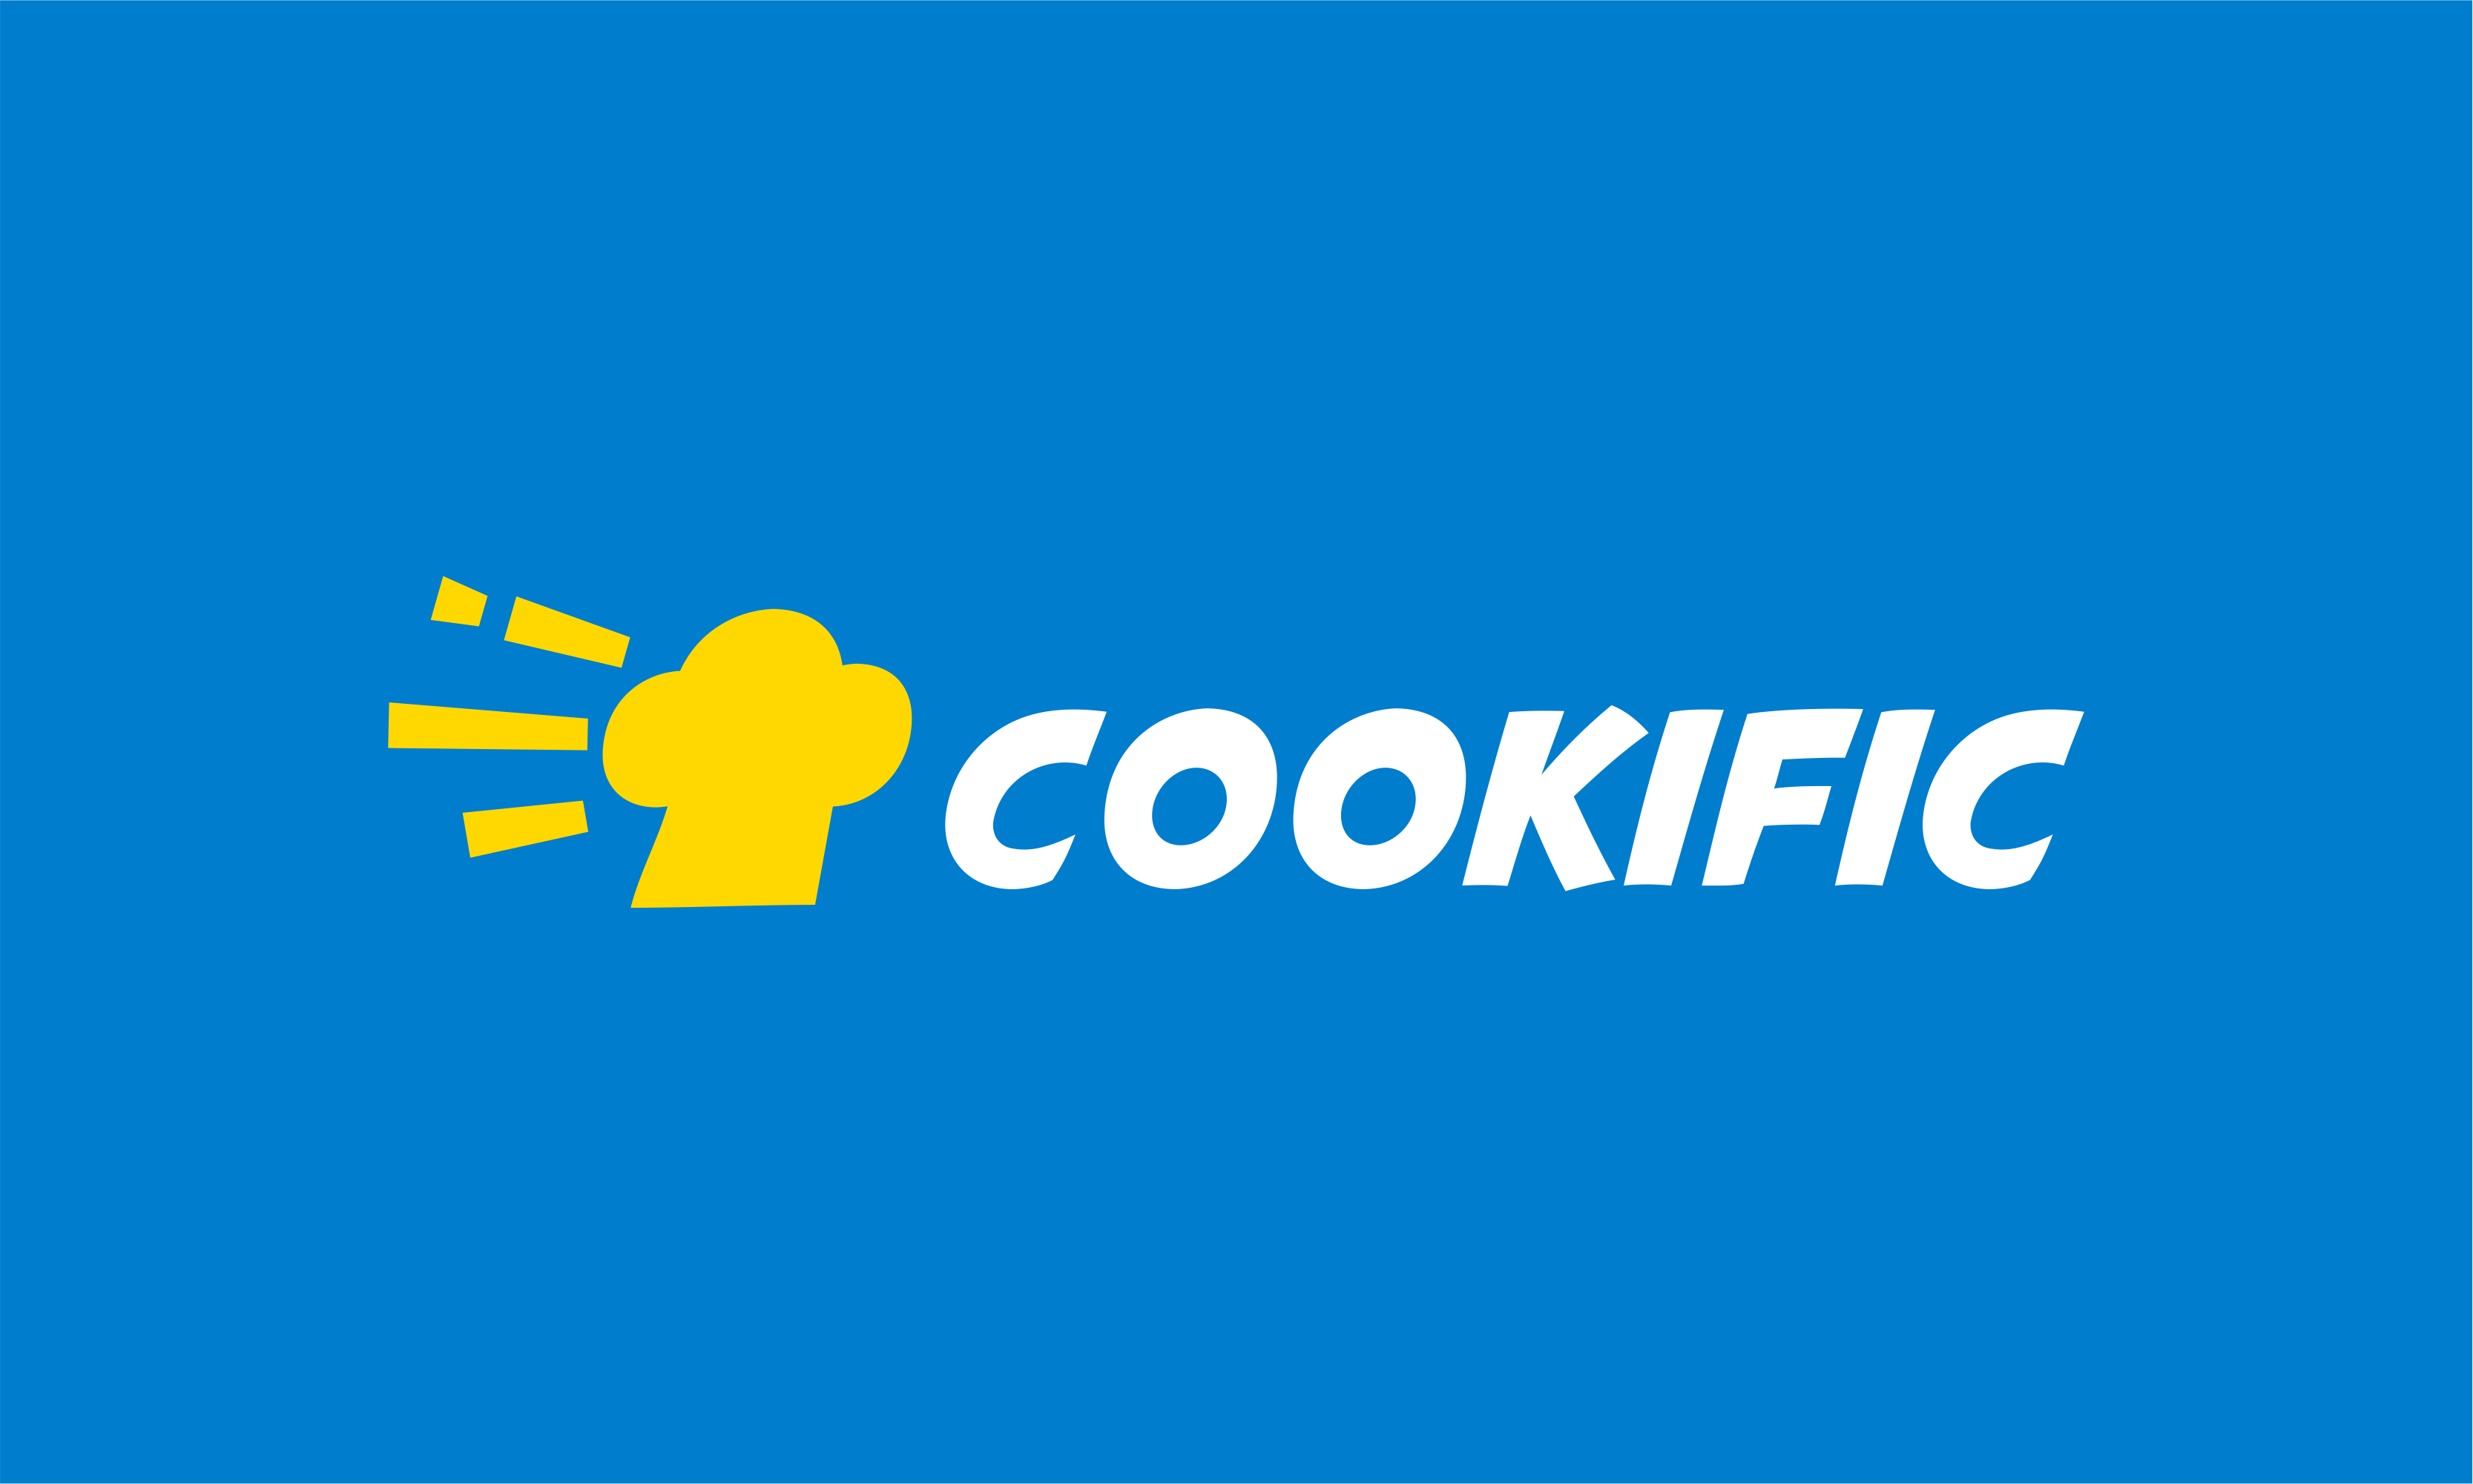 Cookific